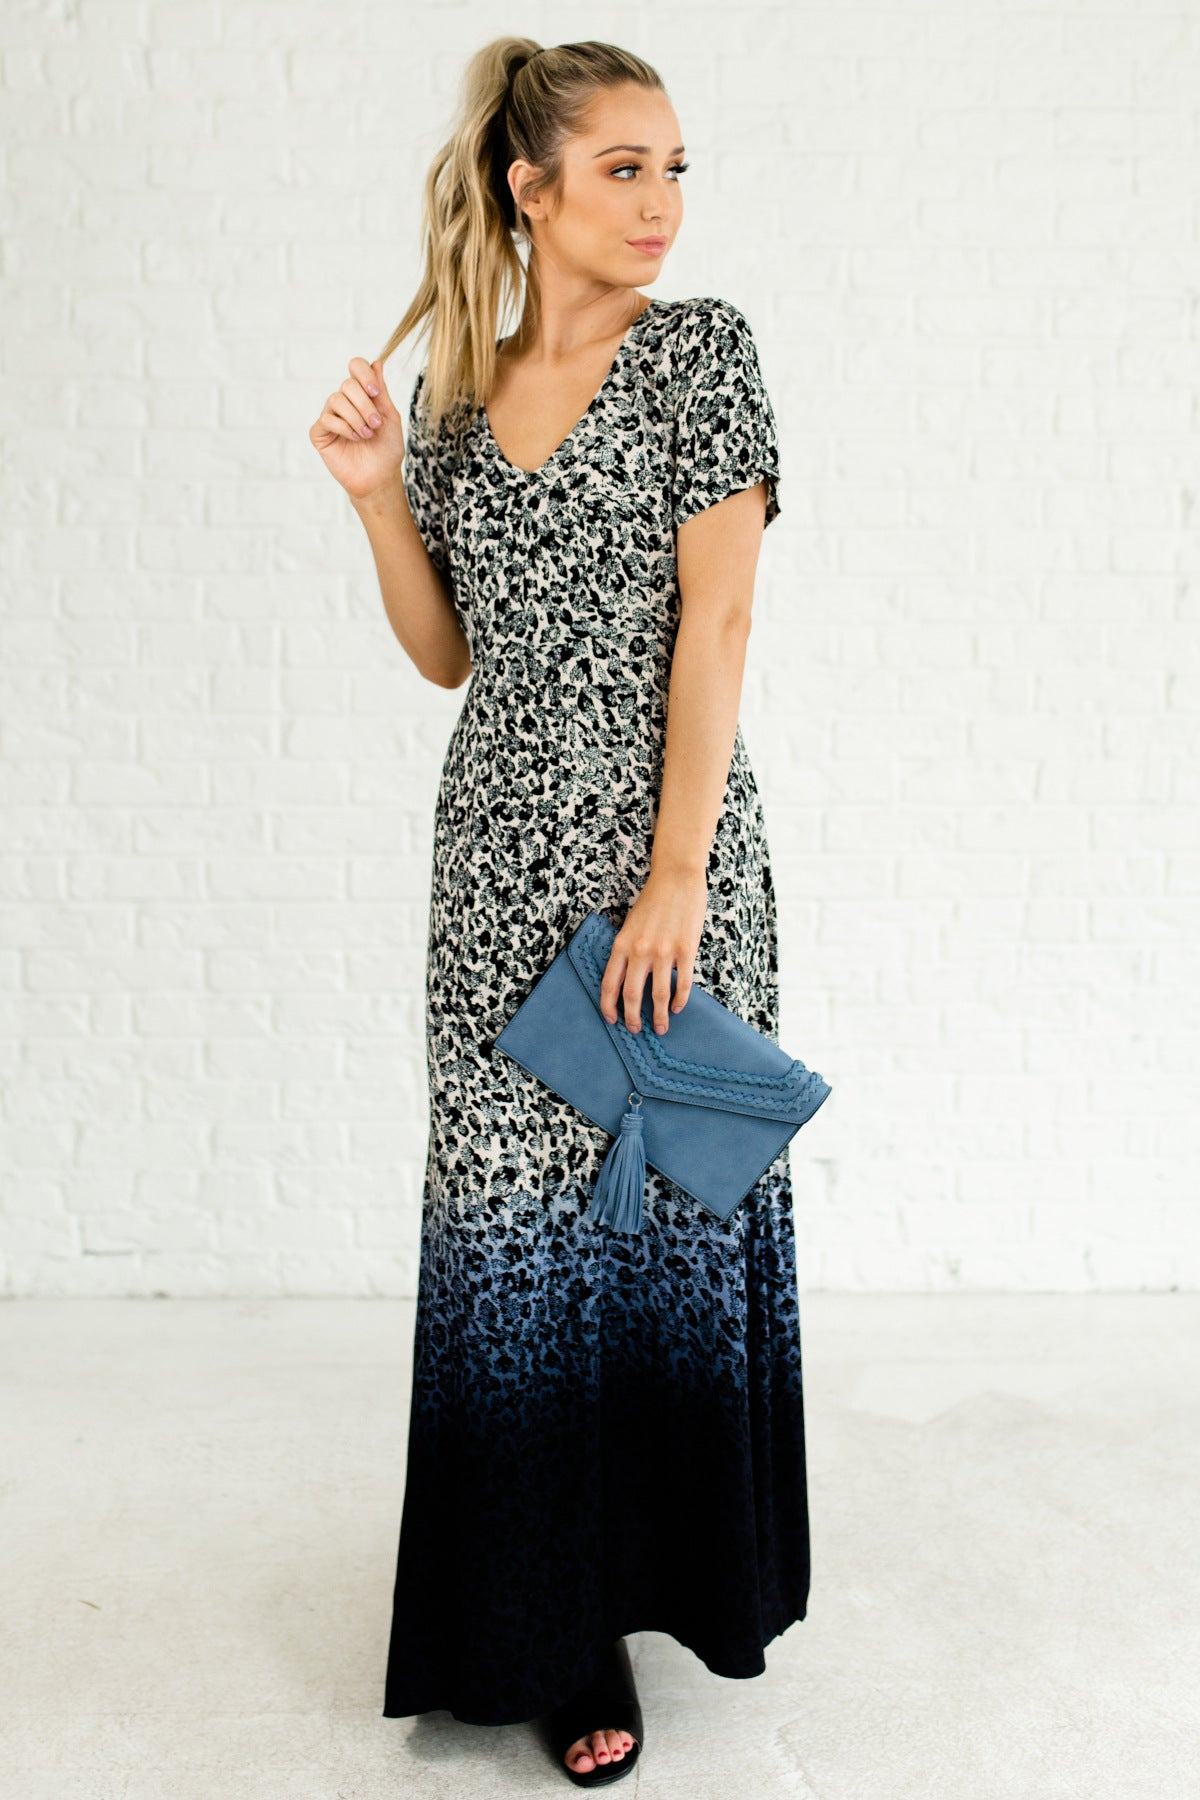 bc6df39dfb Blue Navy Black White Beige Ombre Leopard Print Open Back Maxi Dresses